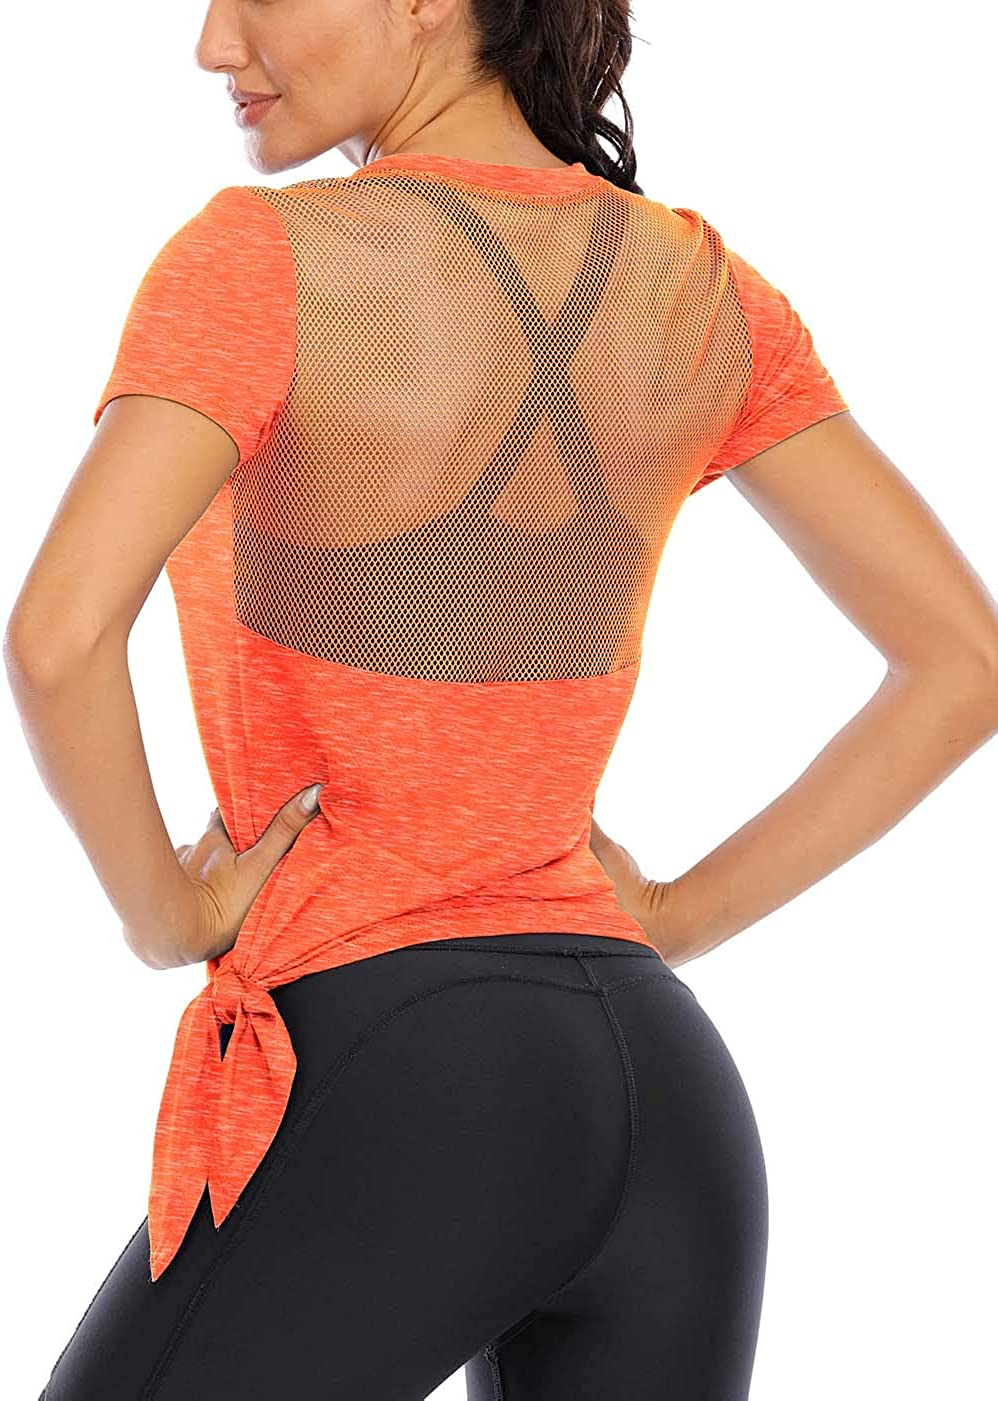 Fihapyli Womens Workout Tops Short Sleeve Mesh Back Side Tie Workout Tank Tops